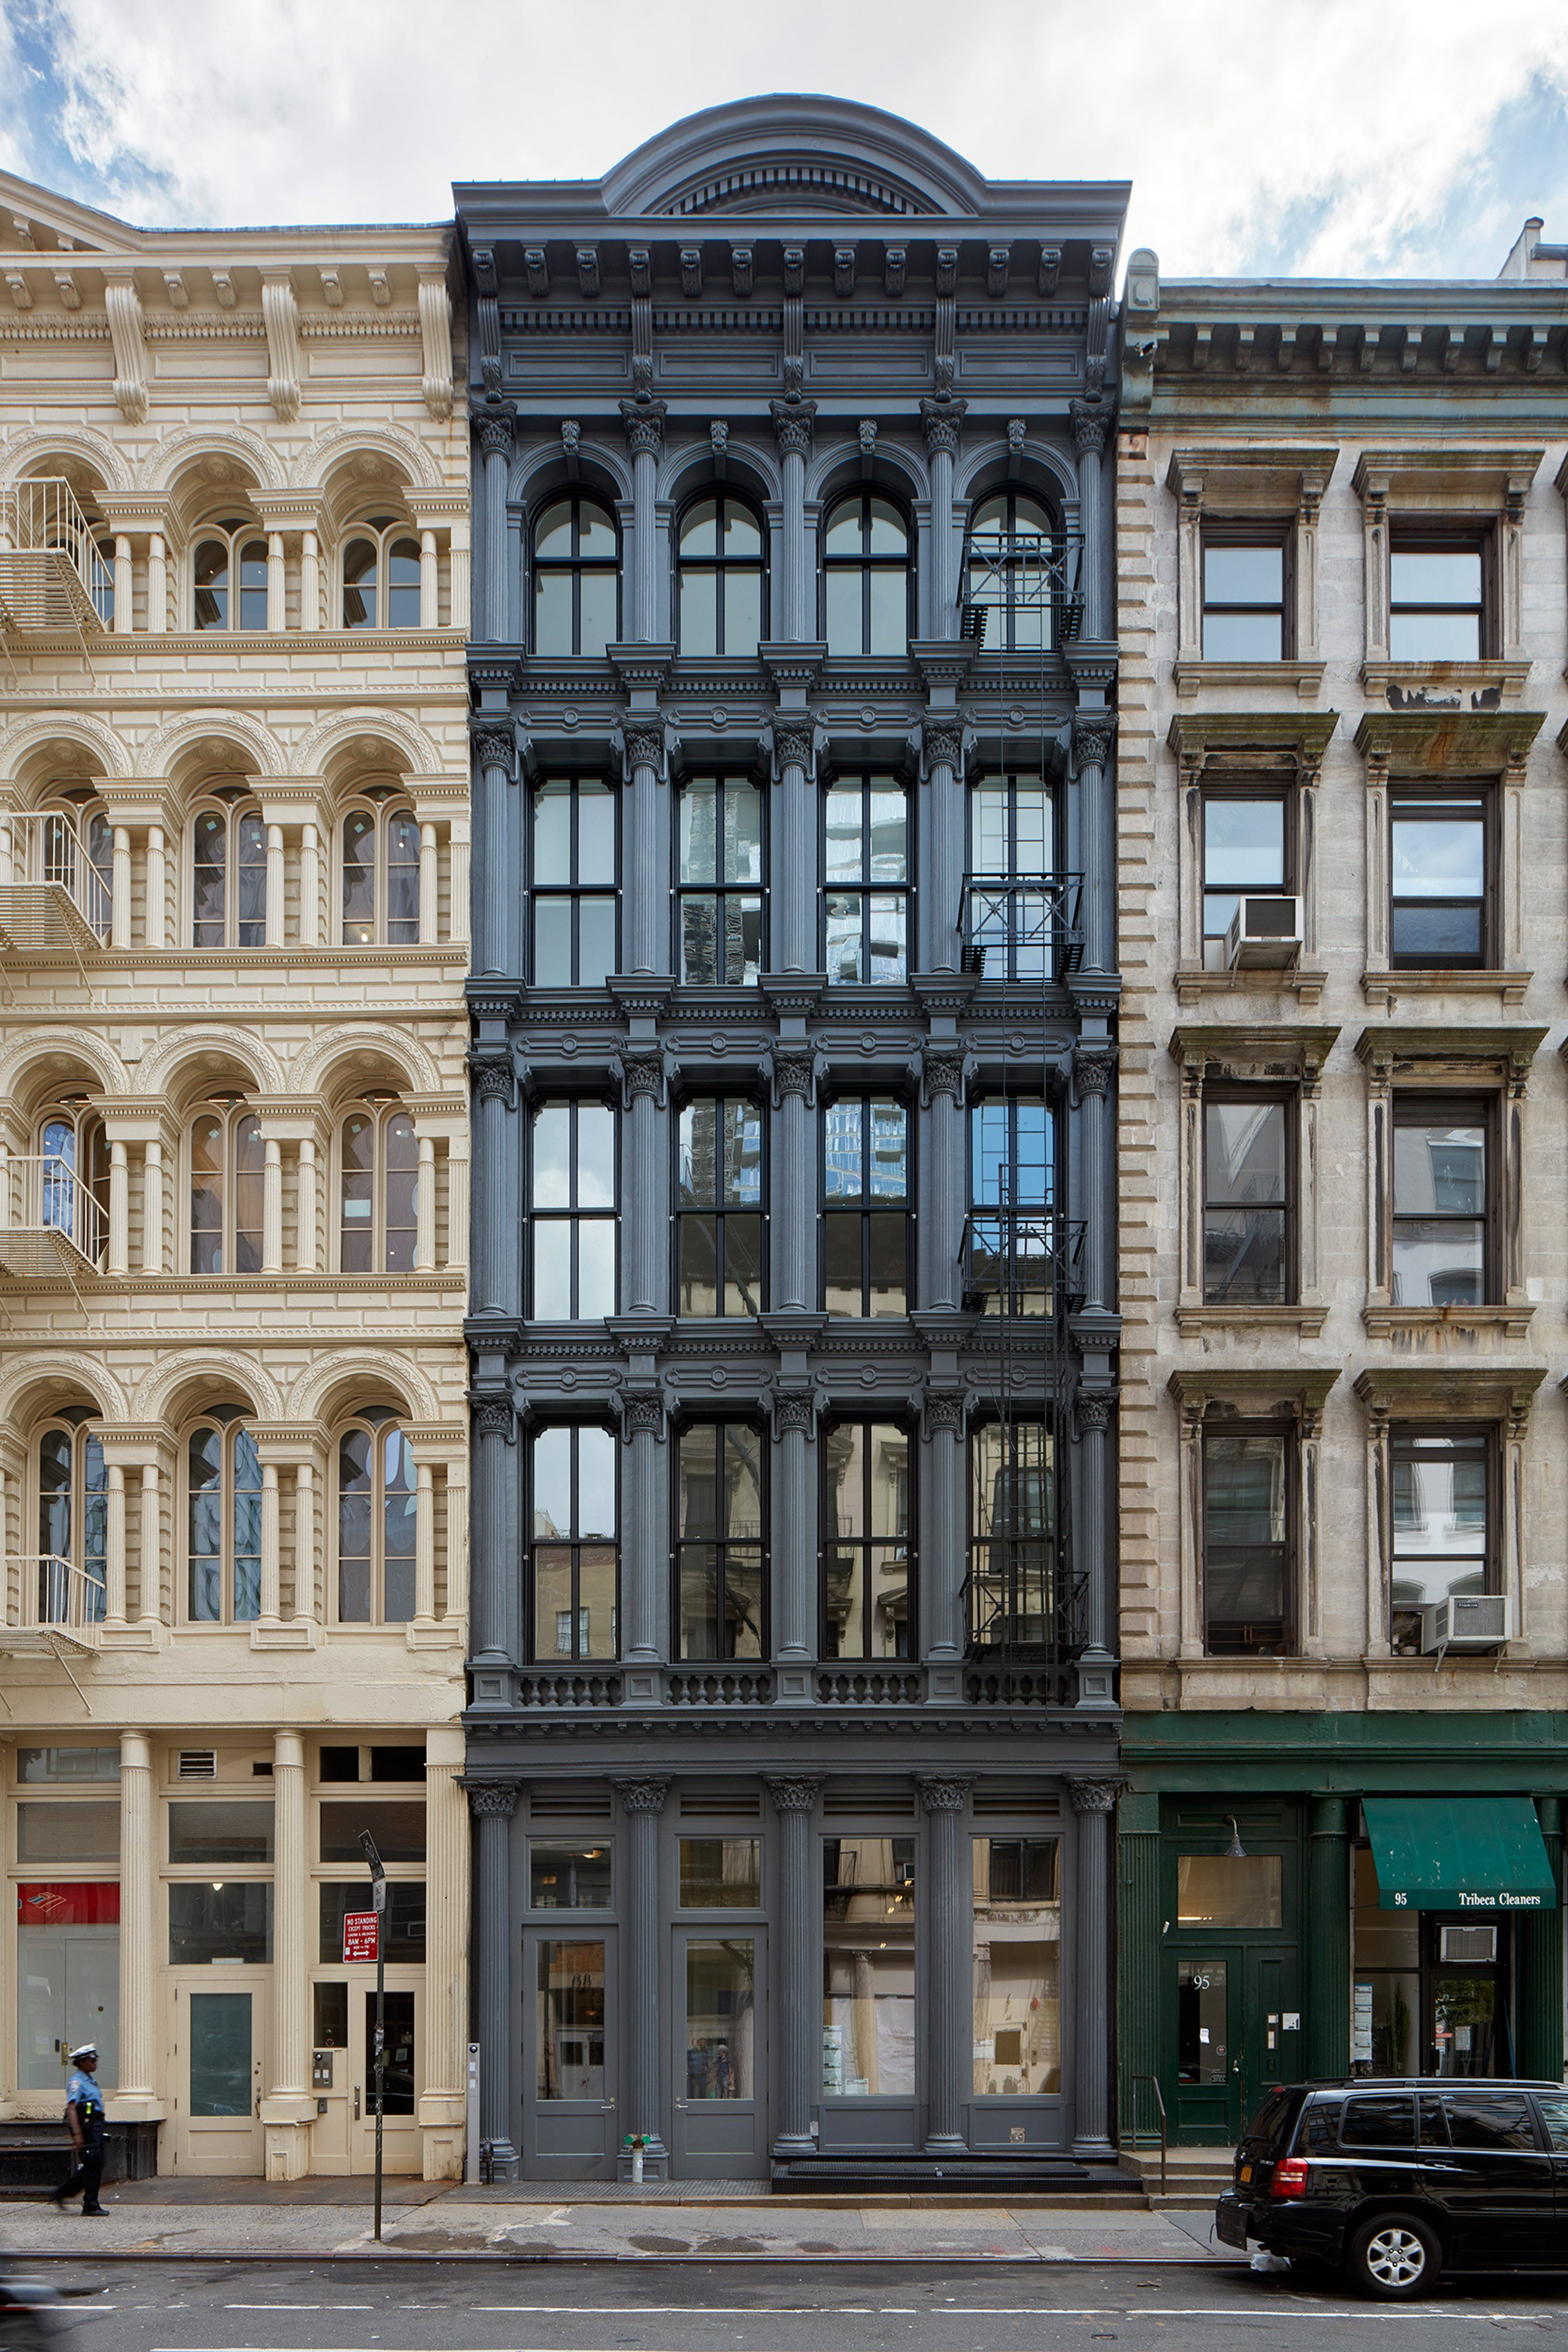 WORKac adds jagged black rooftop extension to historic Manhattan building